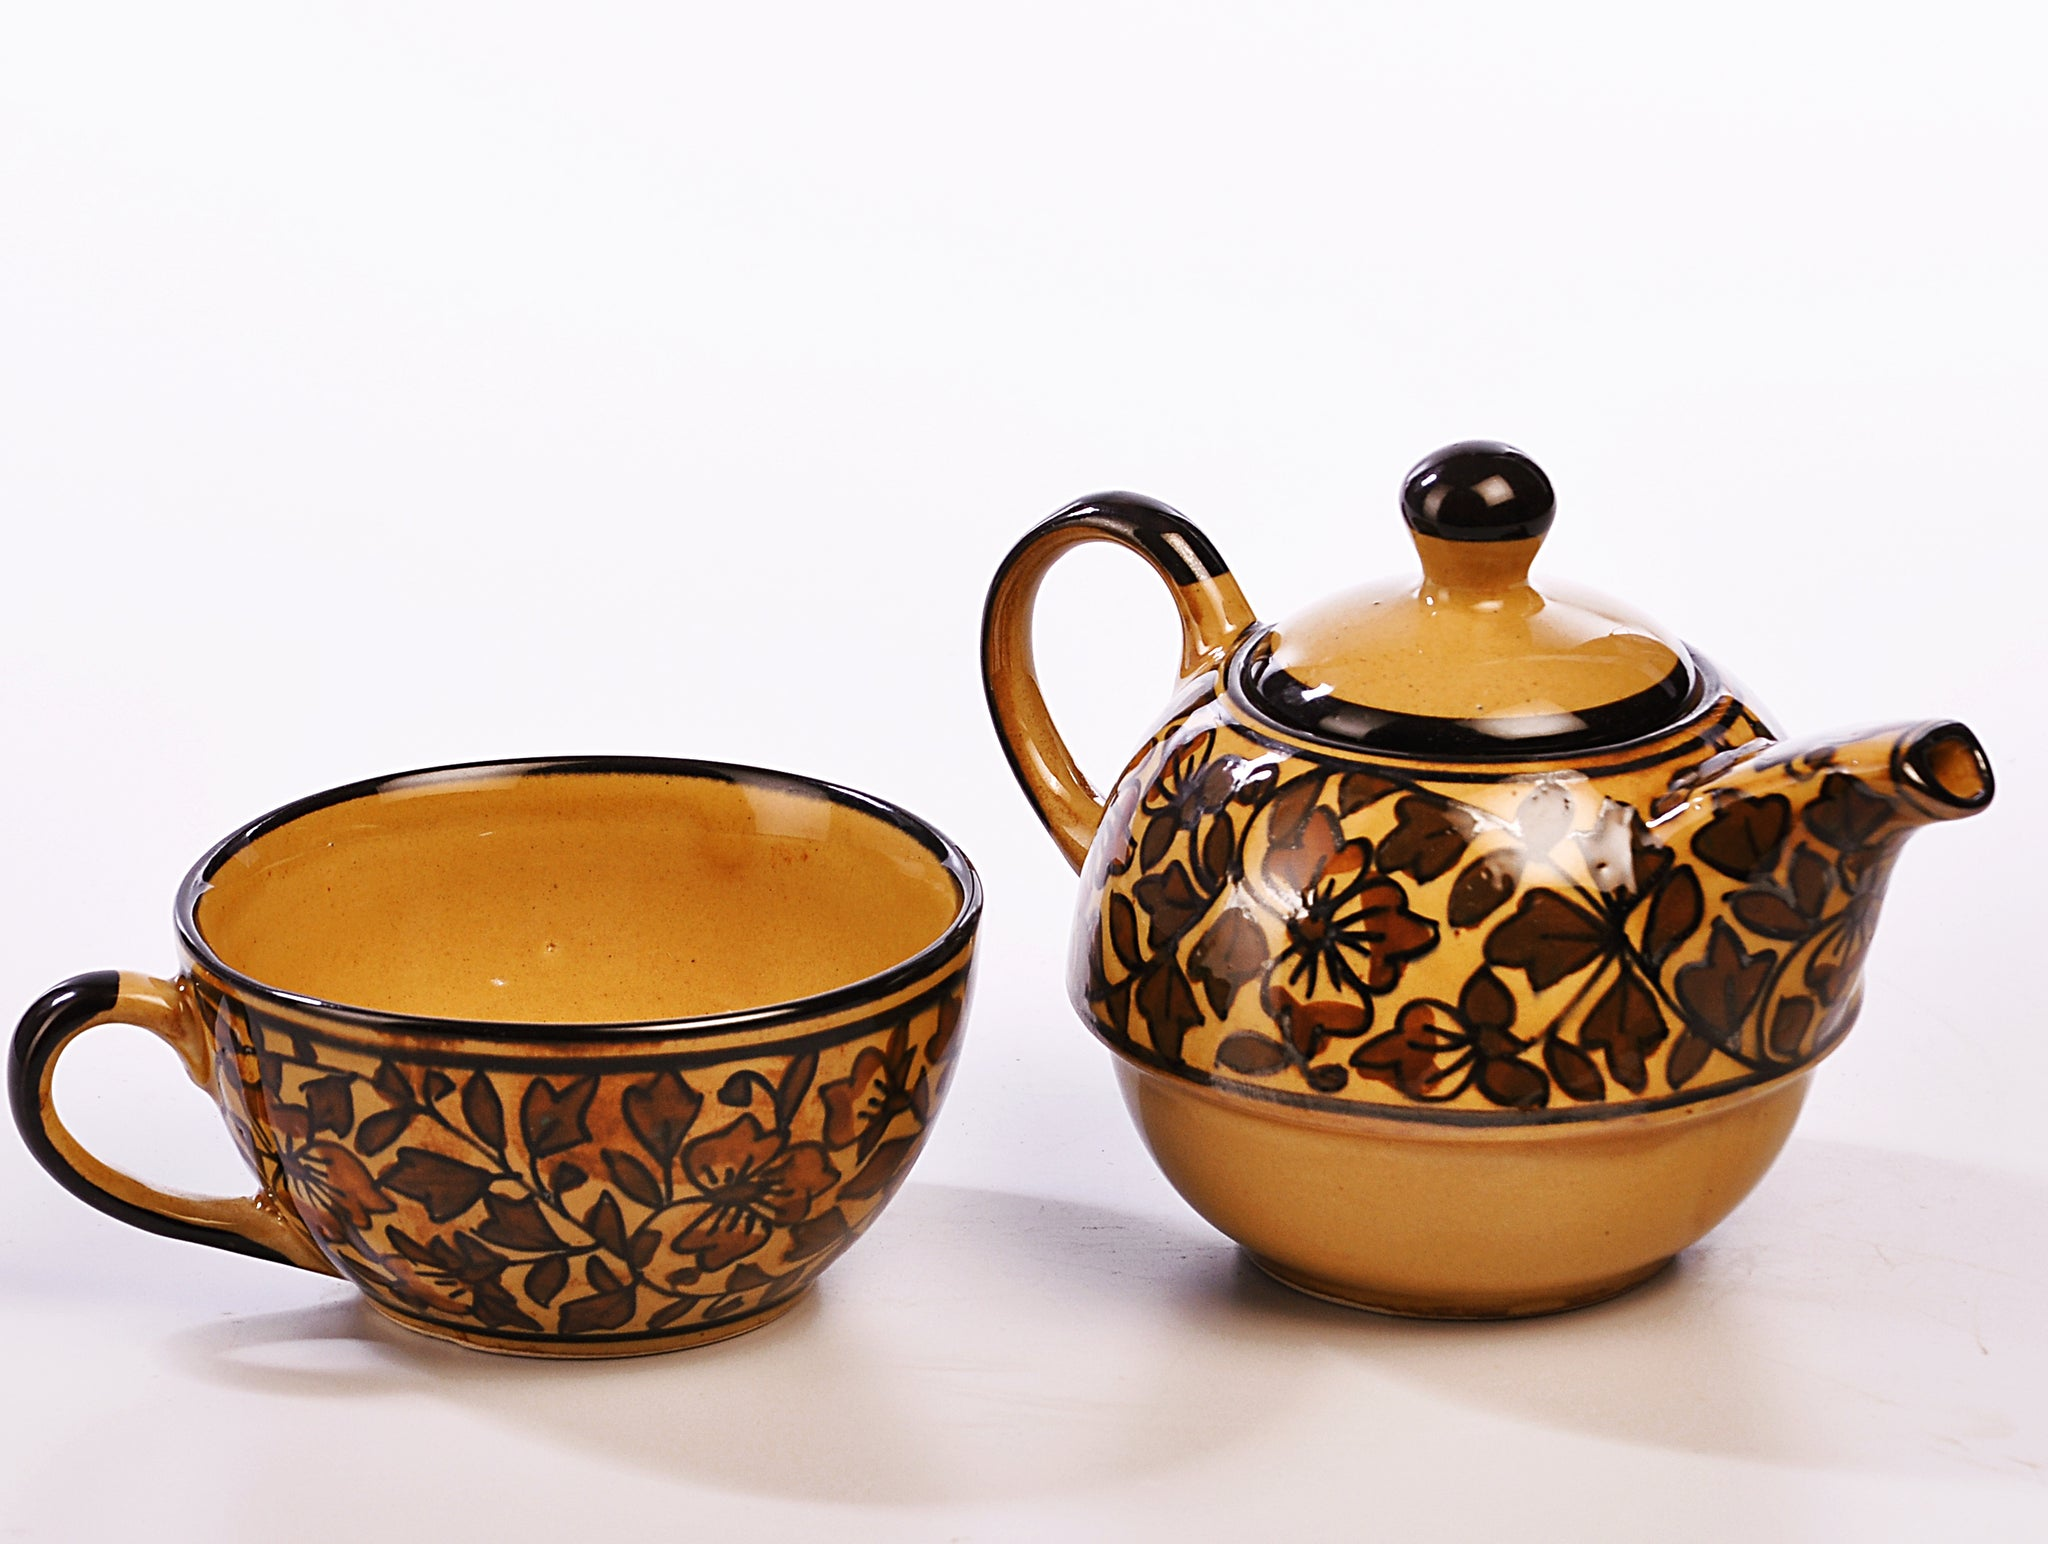 heritage-one-cup-kettle-dec1650